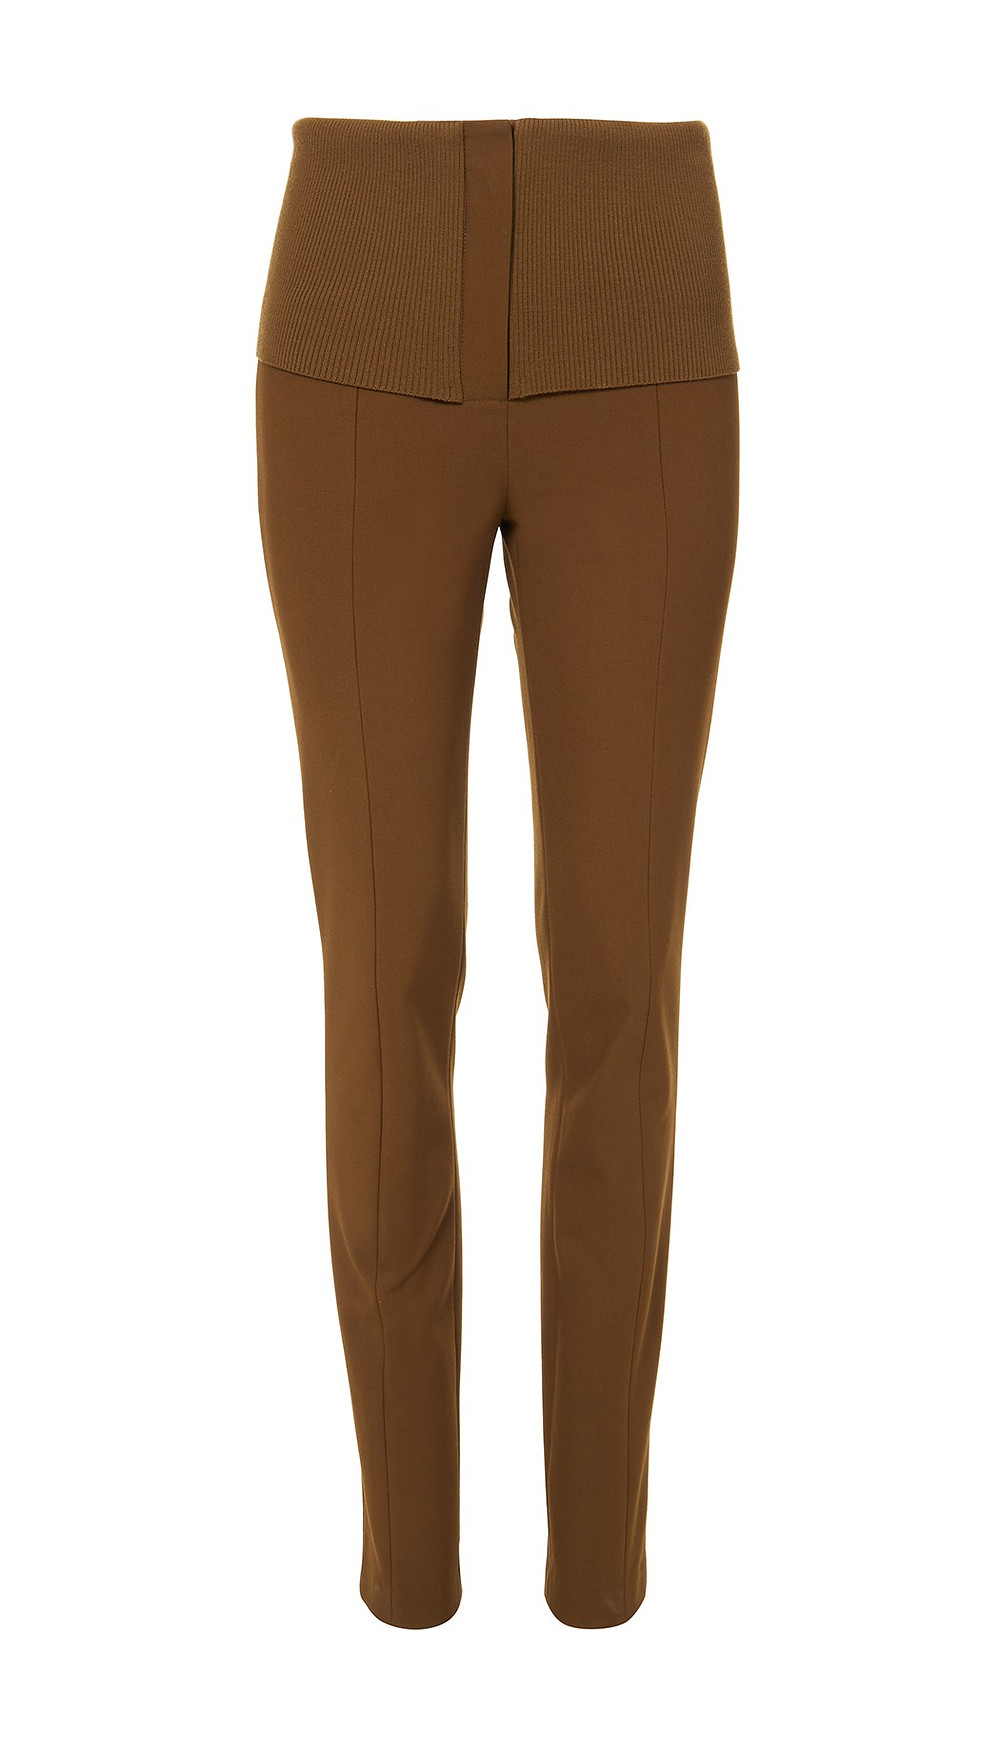 Tibi Anson Stretch Camille High Waisted Skinny Trousers